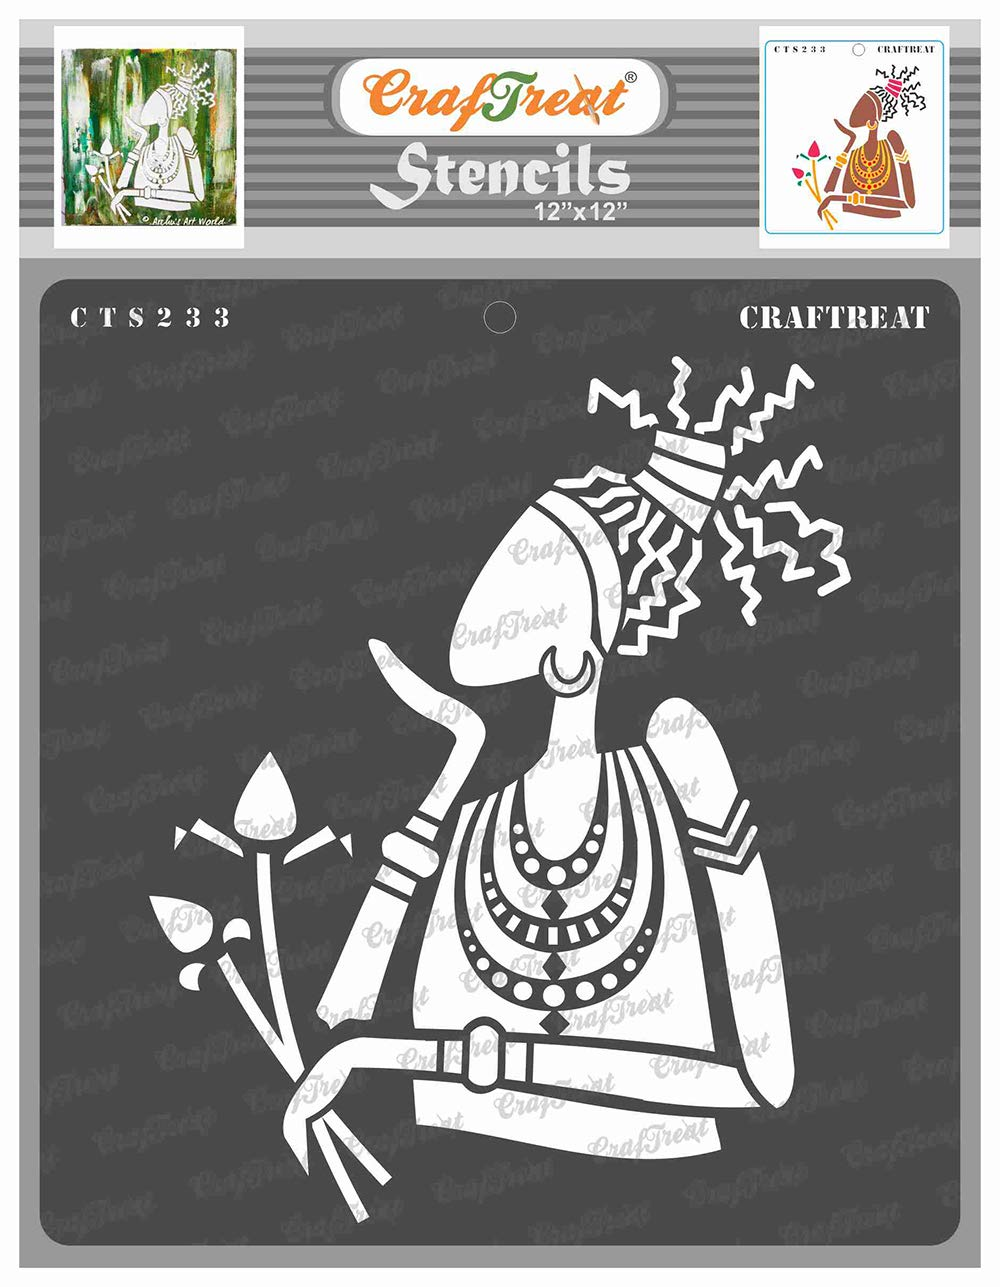 CrafTreat Tribal Stencils for Painting on Wood, Wall, Tile, Canvas, Paper and Floor - Lonely Woman - 12x12 Inches - Reusable DIY Art and Craft Stencils - Tribal Stencil Painting for Wall